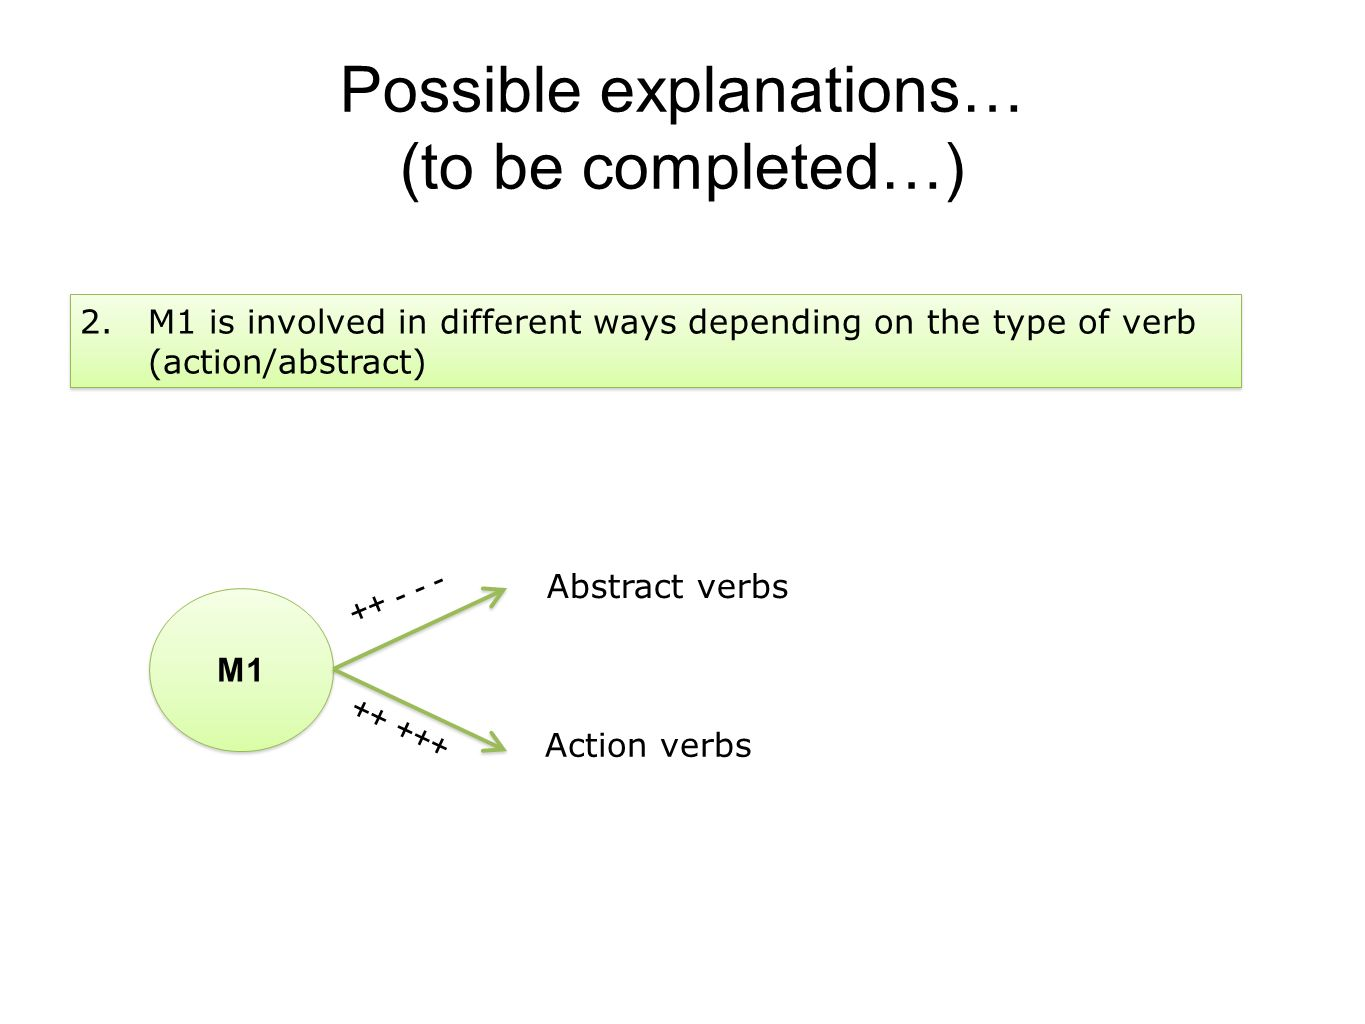 Possible explanations… (to be completed…) 2.M1 is involved in different ways depending on the type of verb (action/abstract) M1 Action verbs Abstract verbs ++ - - - ++ +++